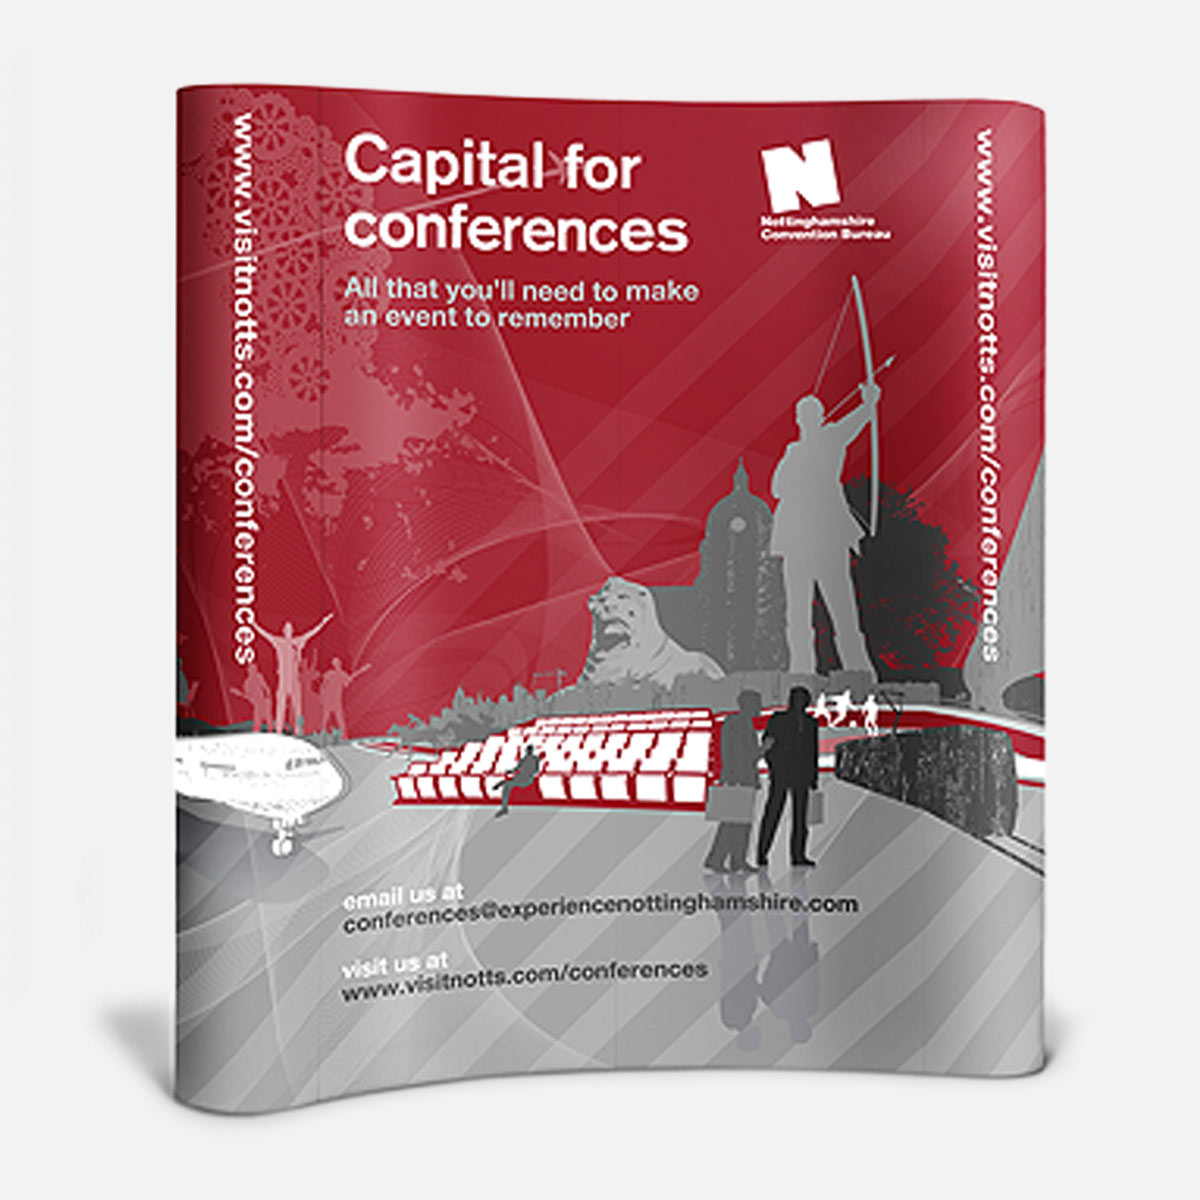 Experience Nottinghamshire Venue Directory conference banner stand